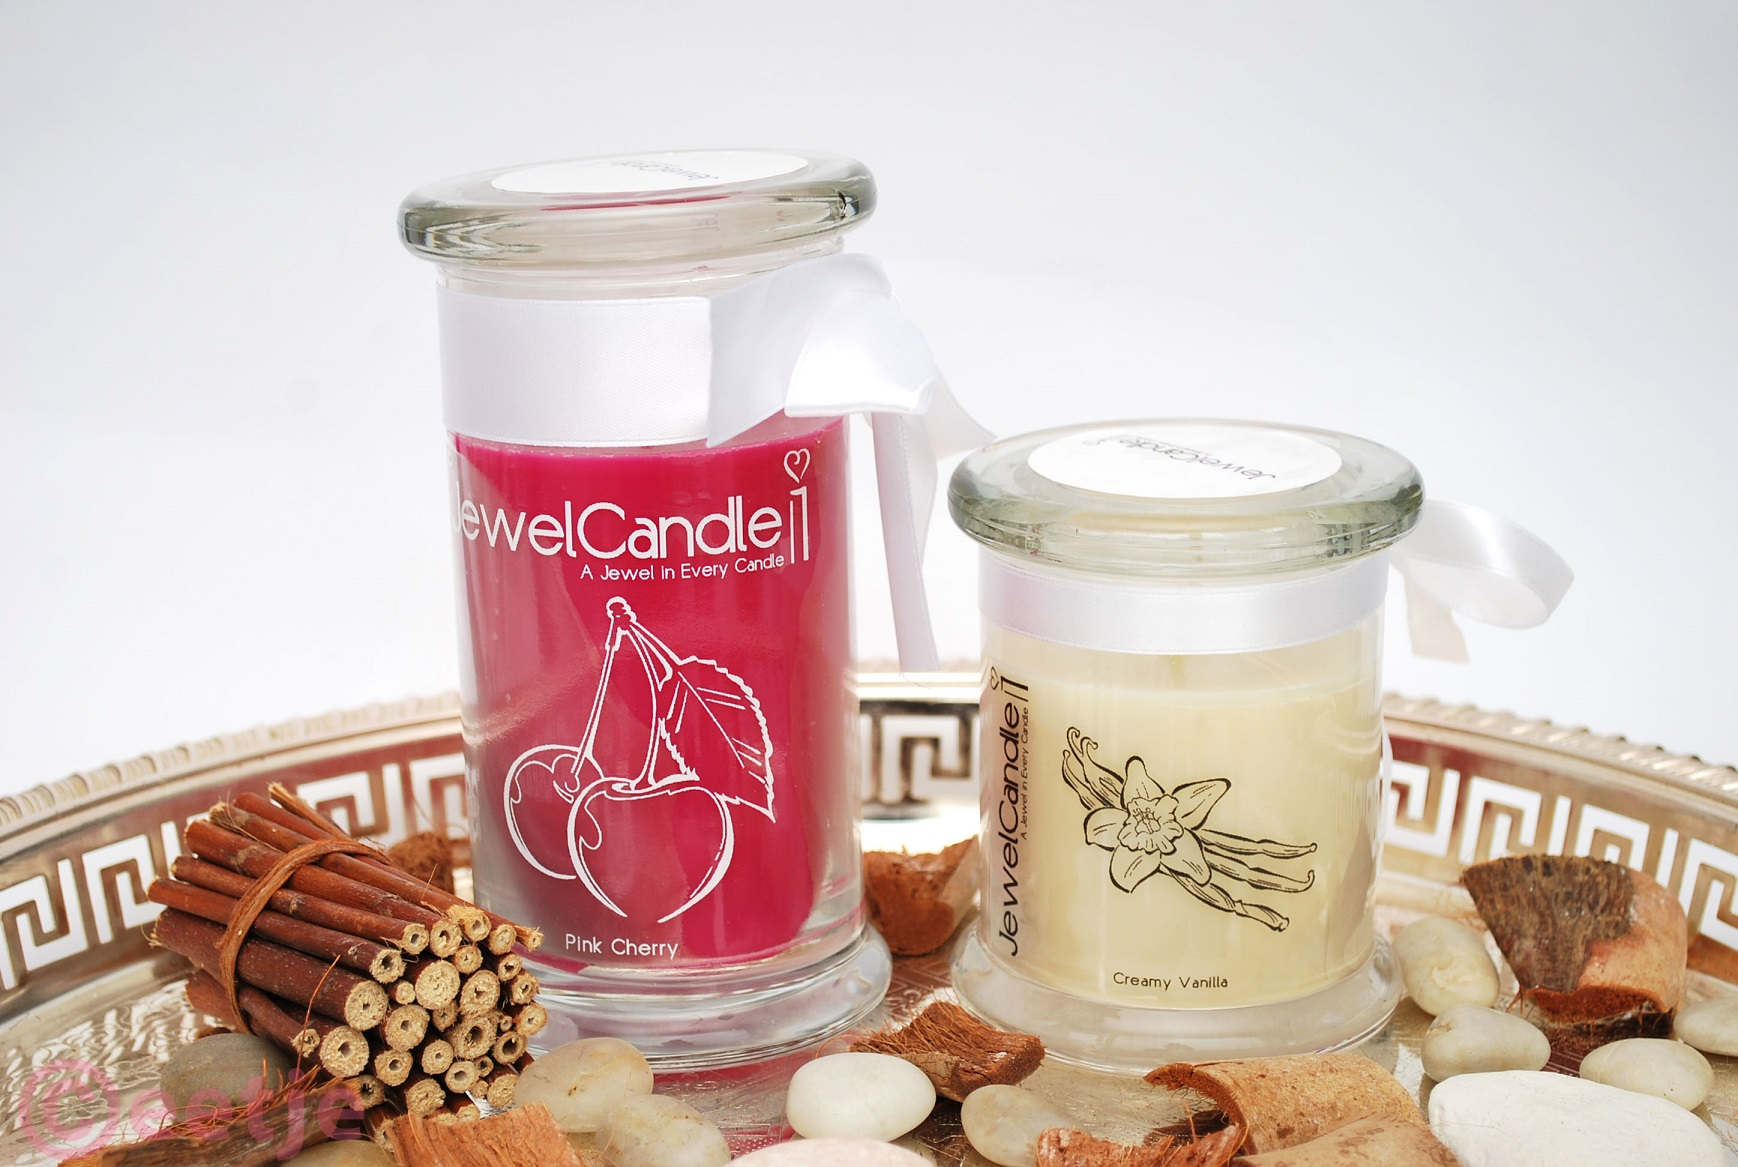 Review JewelCandle geurkaars met sieraad pink cherry